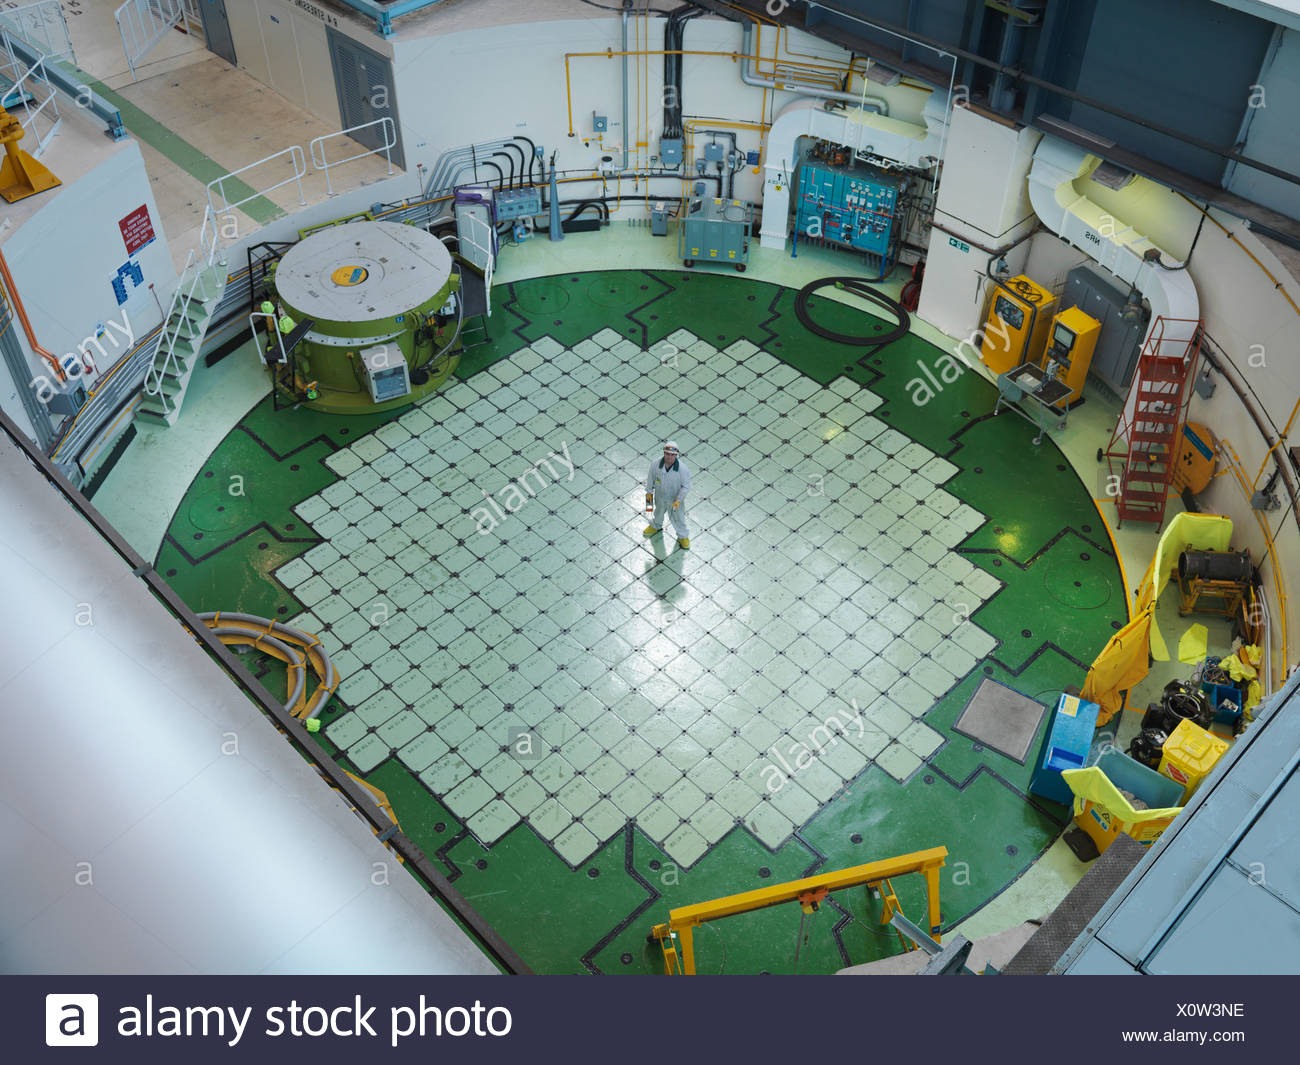 Engineer on Nuclear Reactor Pile cap - Stock Image